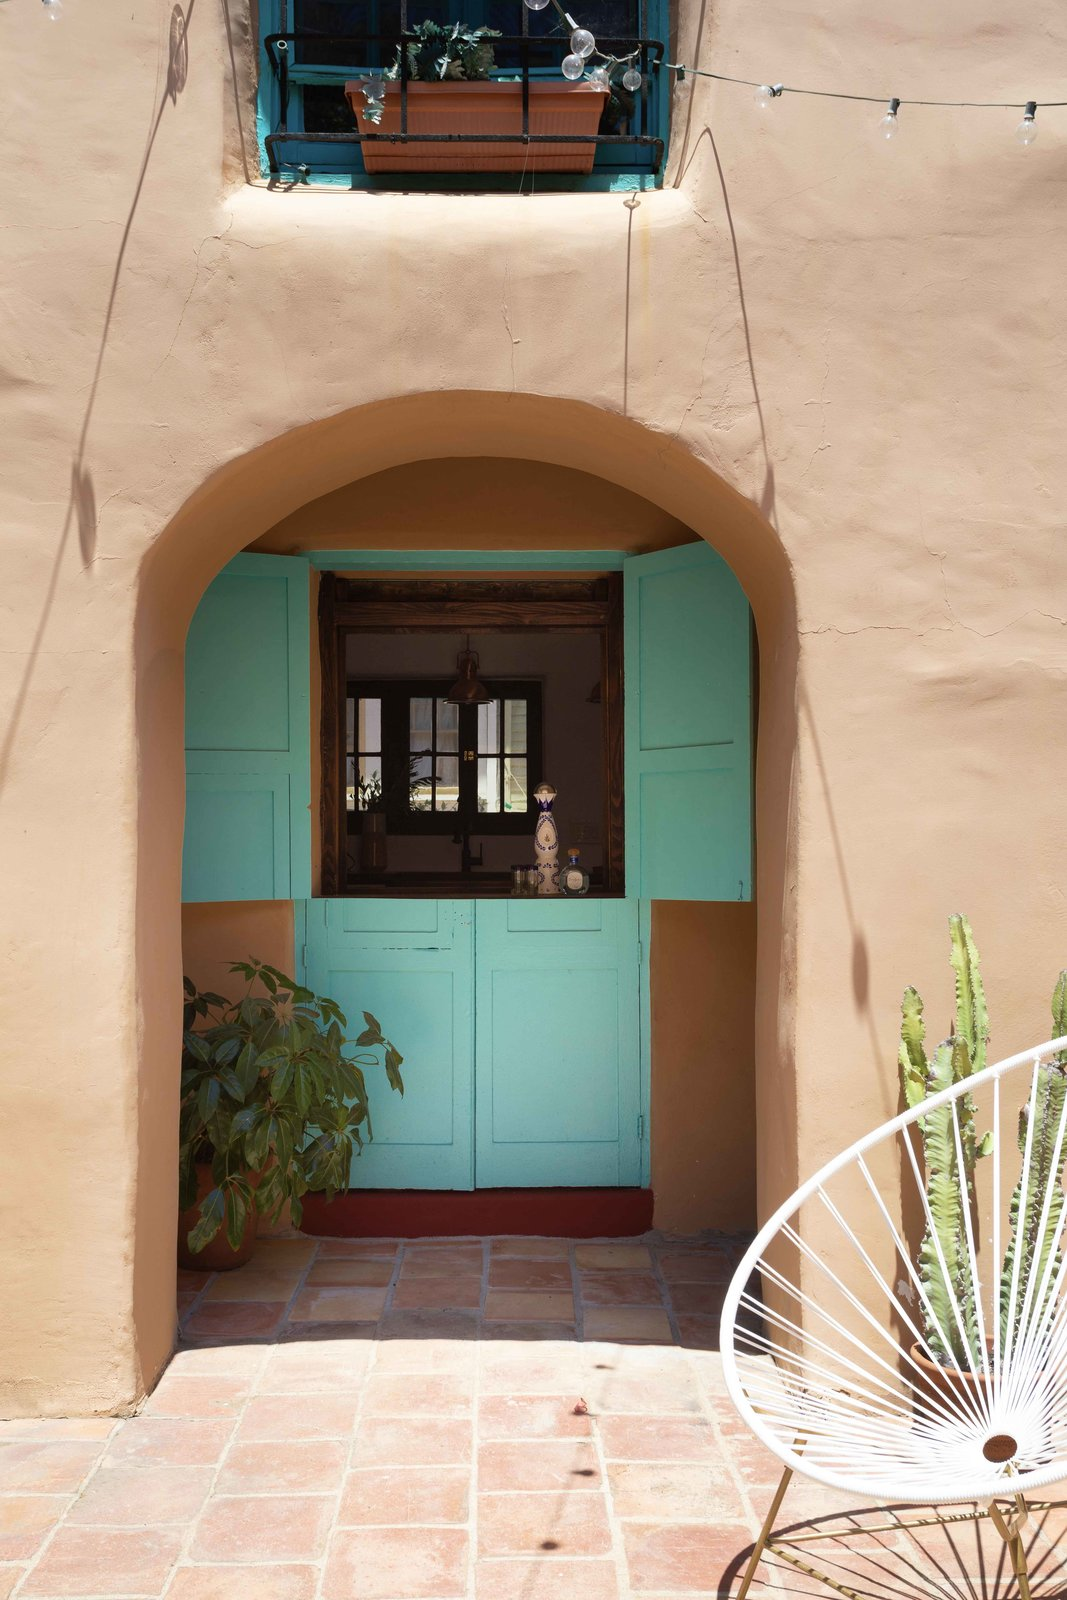 An original doorway is now a window to pass items through from the kitchen counter.  Photo 16 of 20 in The Restored L.A. Home of Poet Alice Lynch Is a Rad Option If Your Budget Stretches to $1.8M